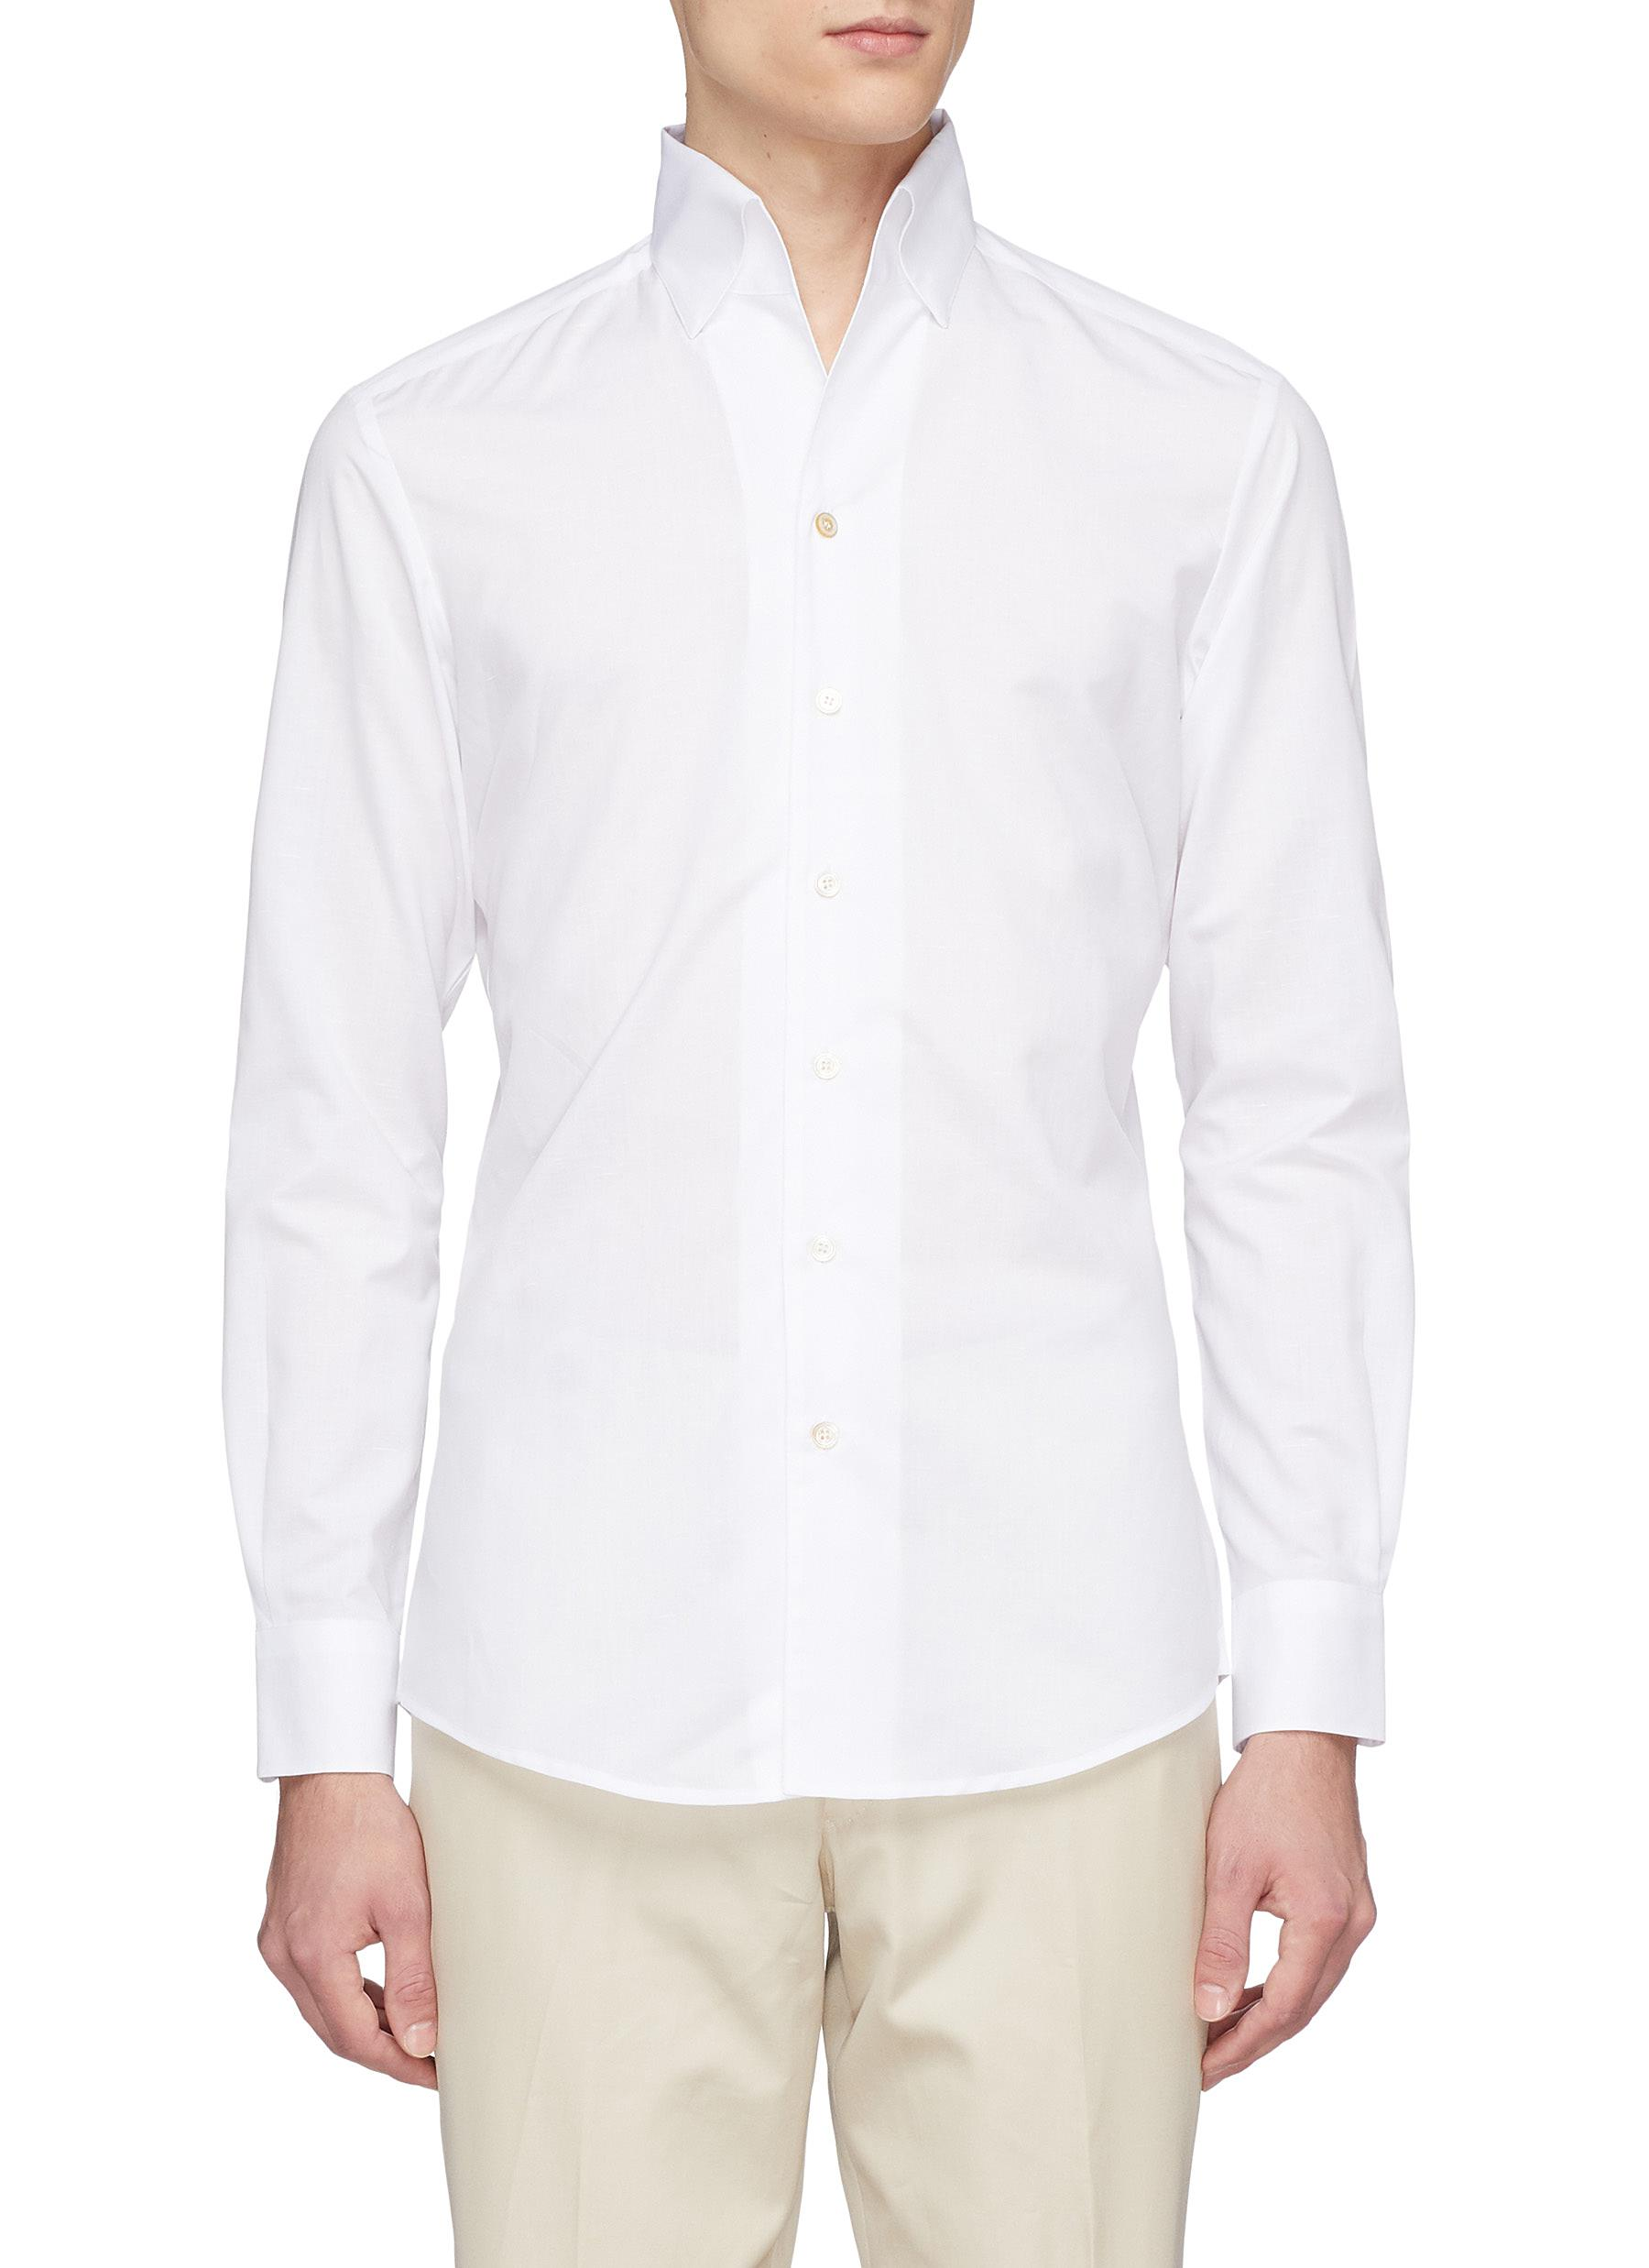 Shop the Save the Children Edition Leisure Shirt